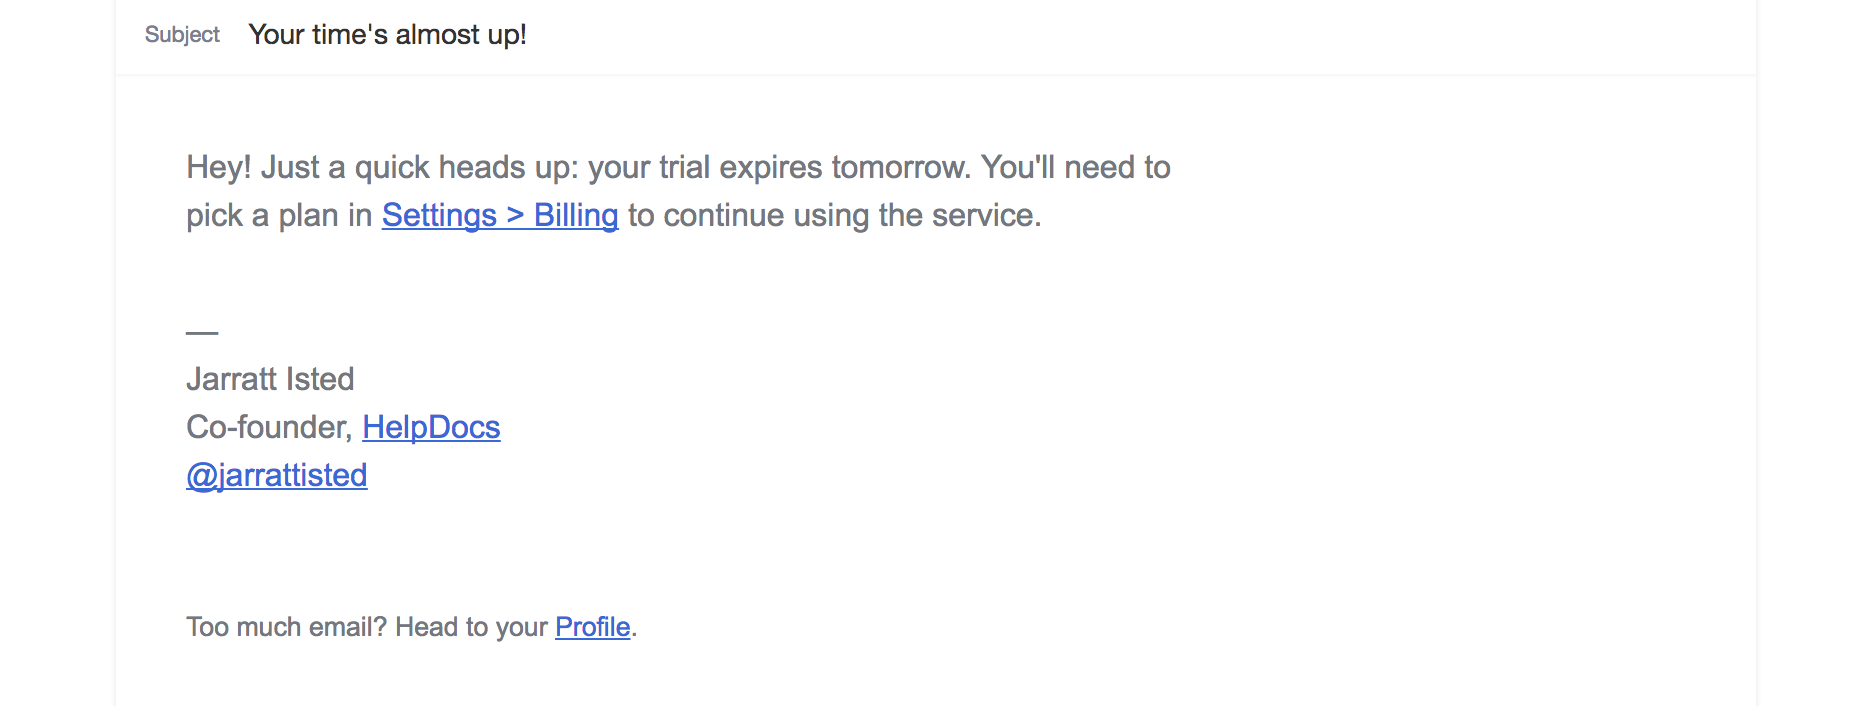 Onboarding email 2 trial is almost over